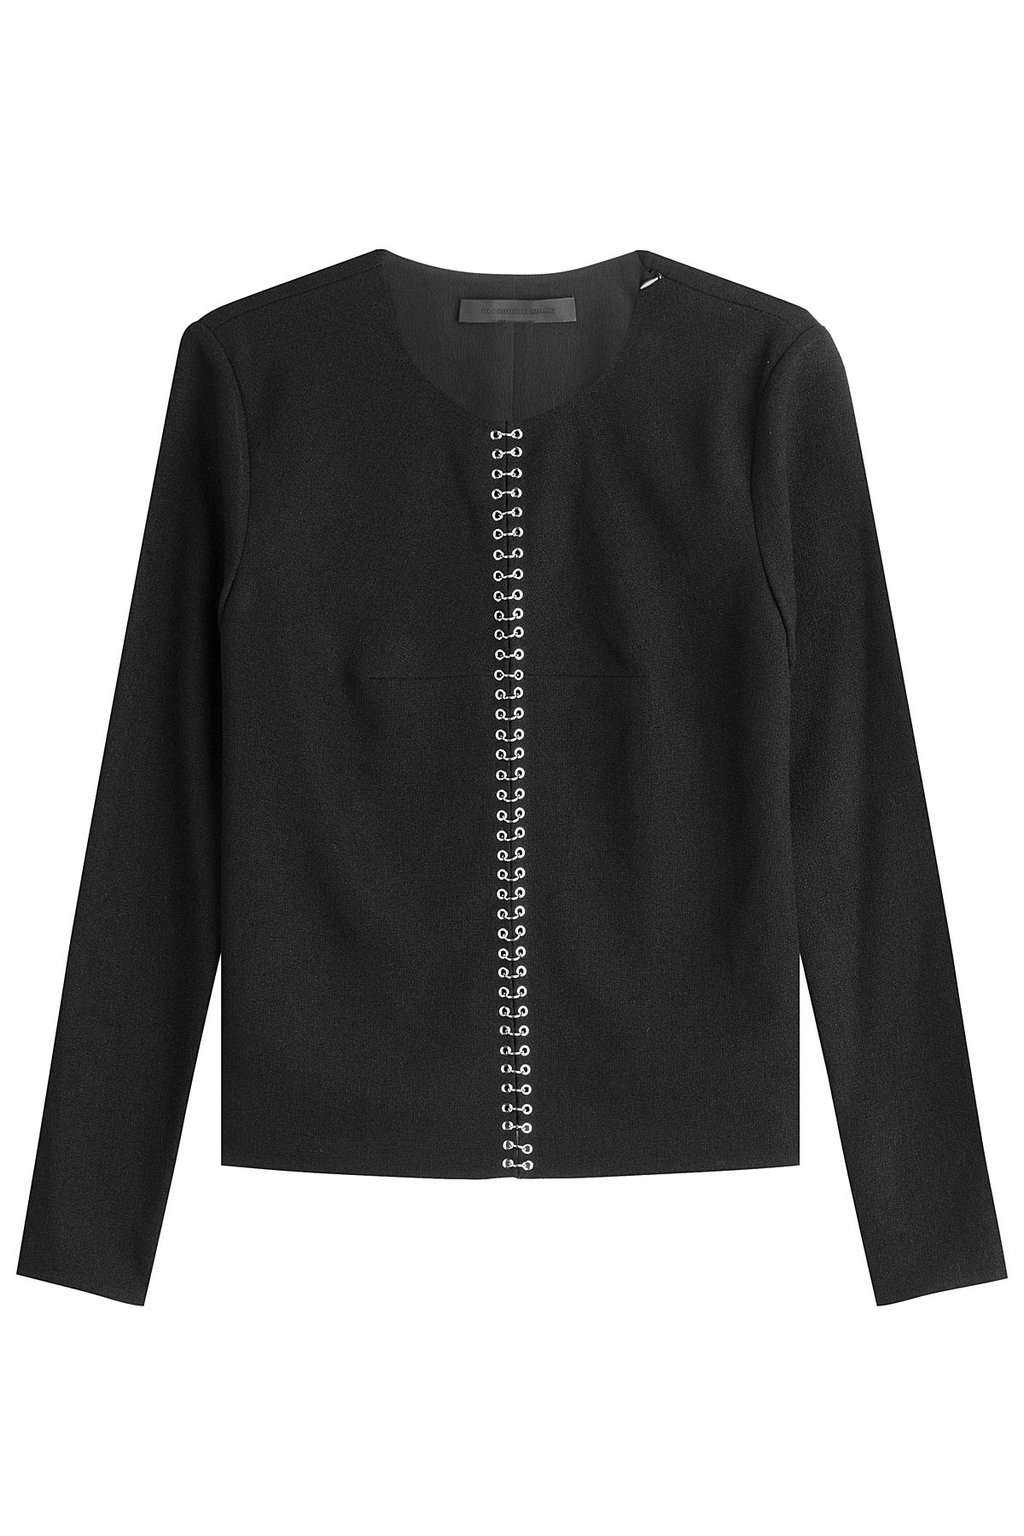 Crepe Top With Piercing Hardware - pattern: plain; style: blouse; predominant colour: black; occasions: evening; length: standard; fibres: cotton - 100%; fit: body skimming; neckline: crew; sleeve length: long sleeve; sleeve style: standard; texture group: crepes; pattern type: fabric; season: a/w 2016; wardrobe: event